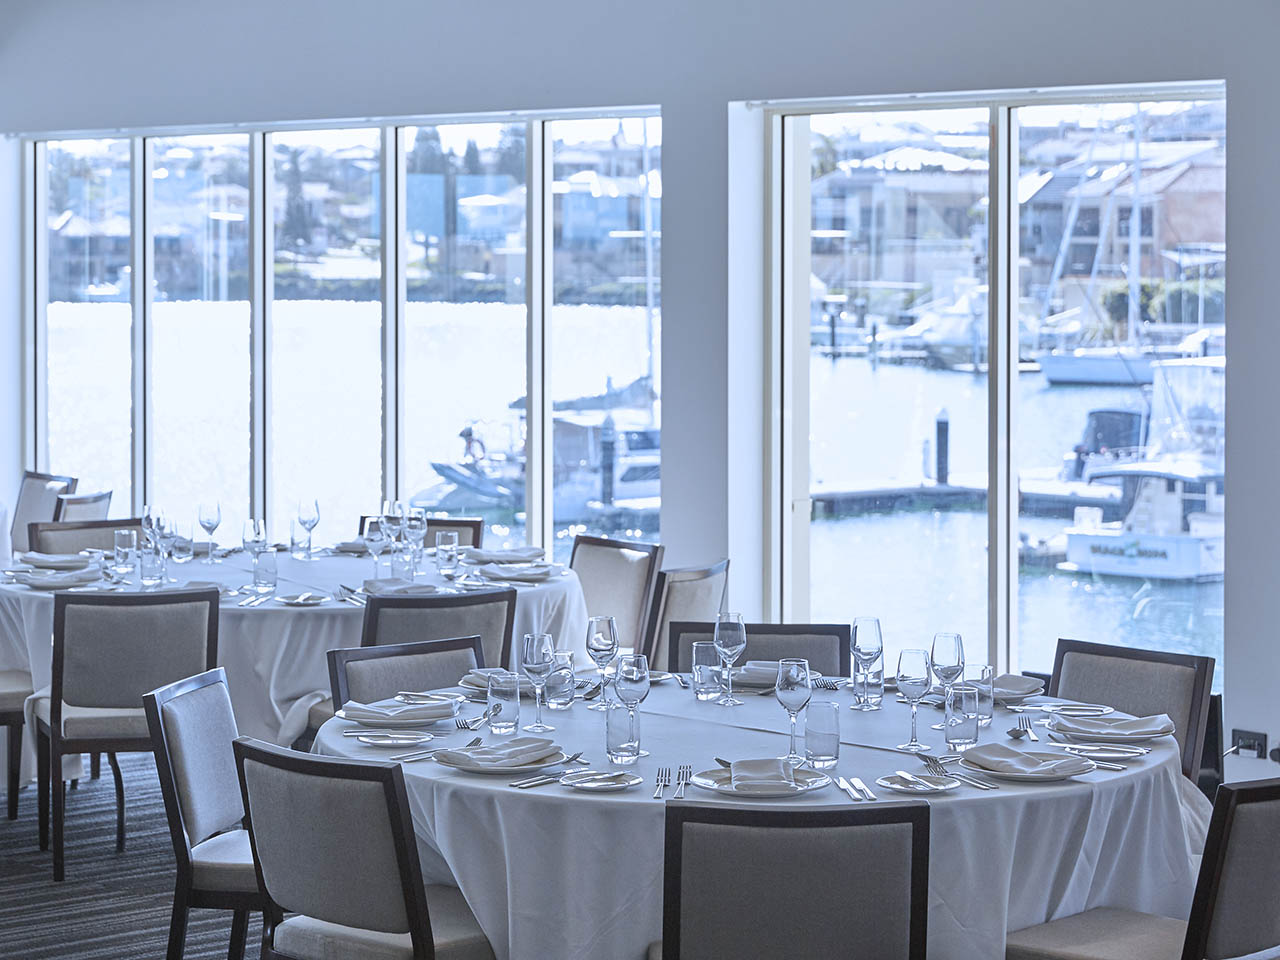 Event Venue With White Chairs, White Table Cloths And Surround Windows Overlooking The Marina.